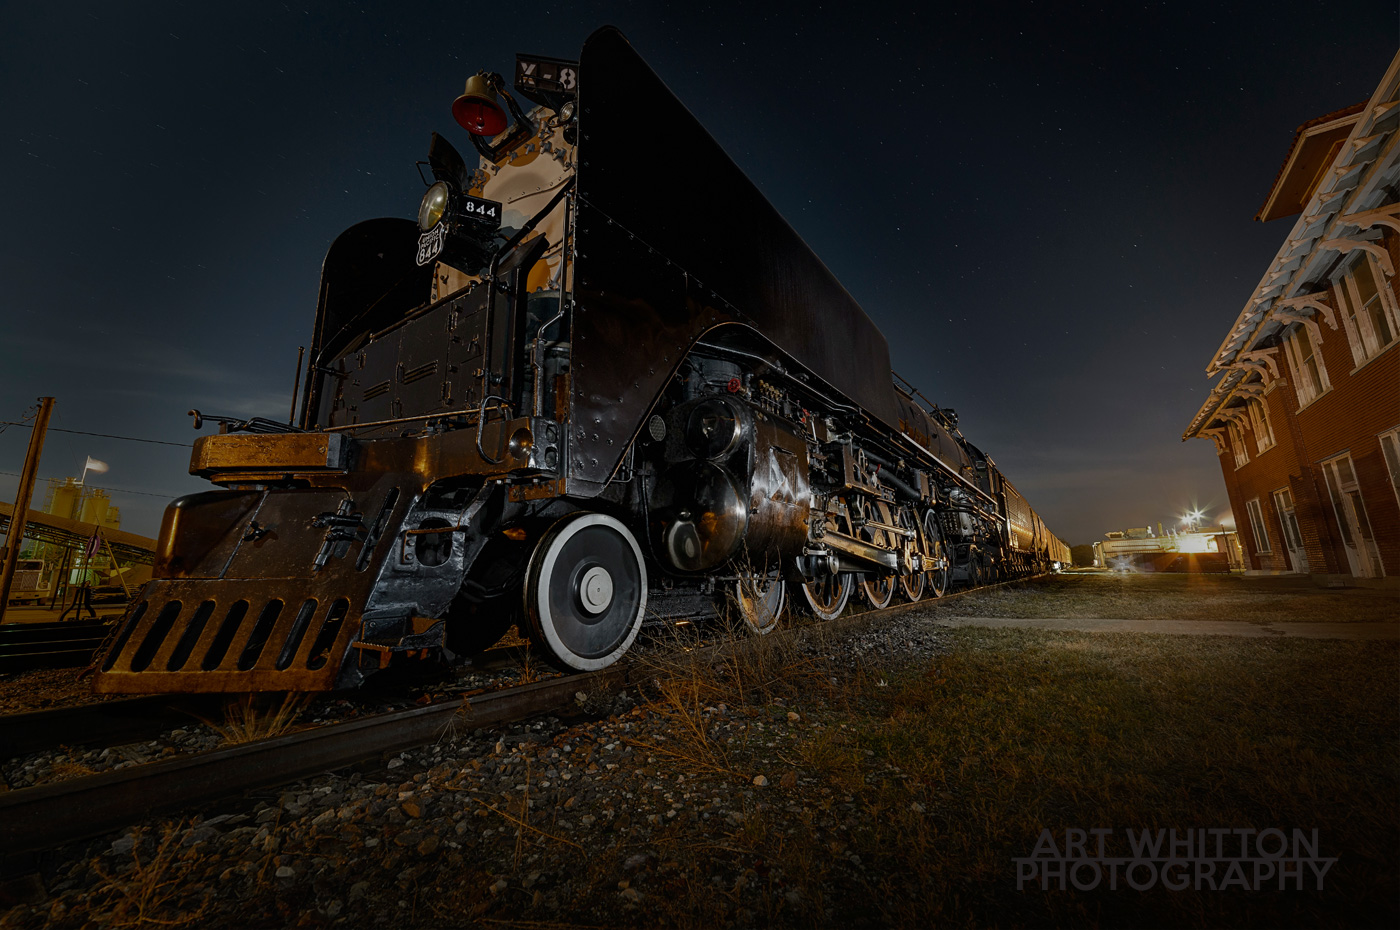 up-844-steam-engine-at-night